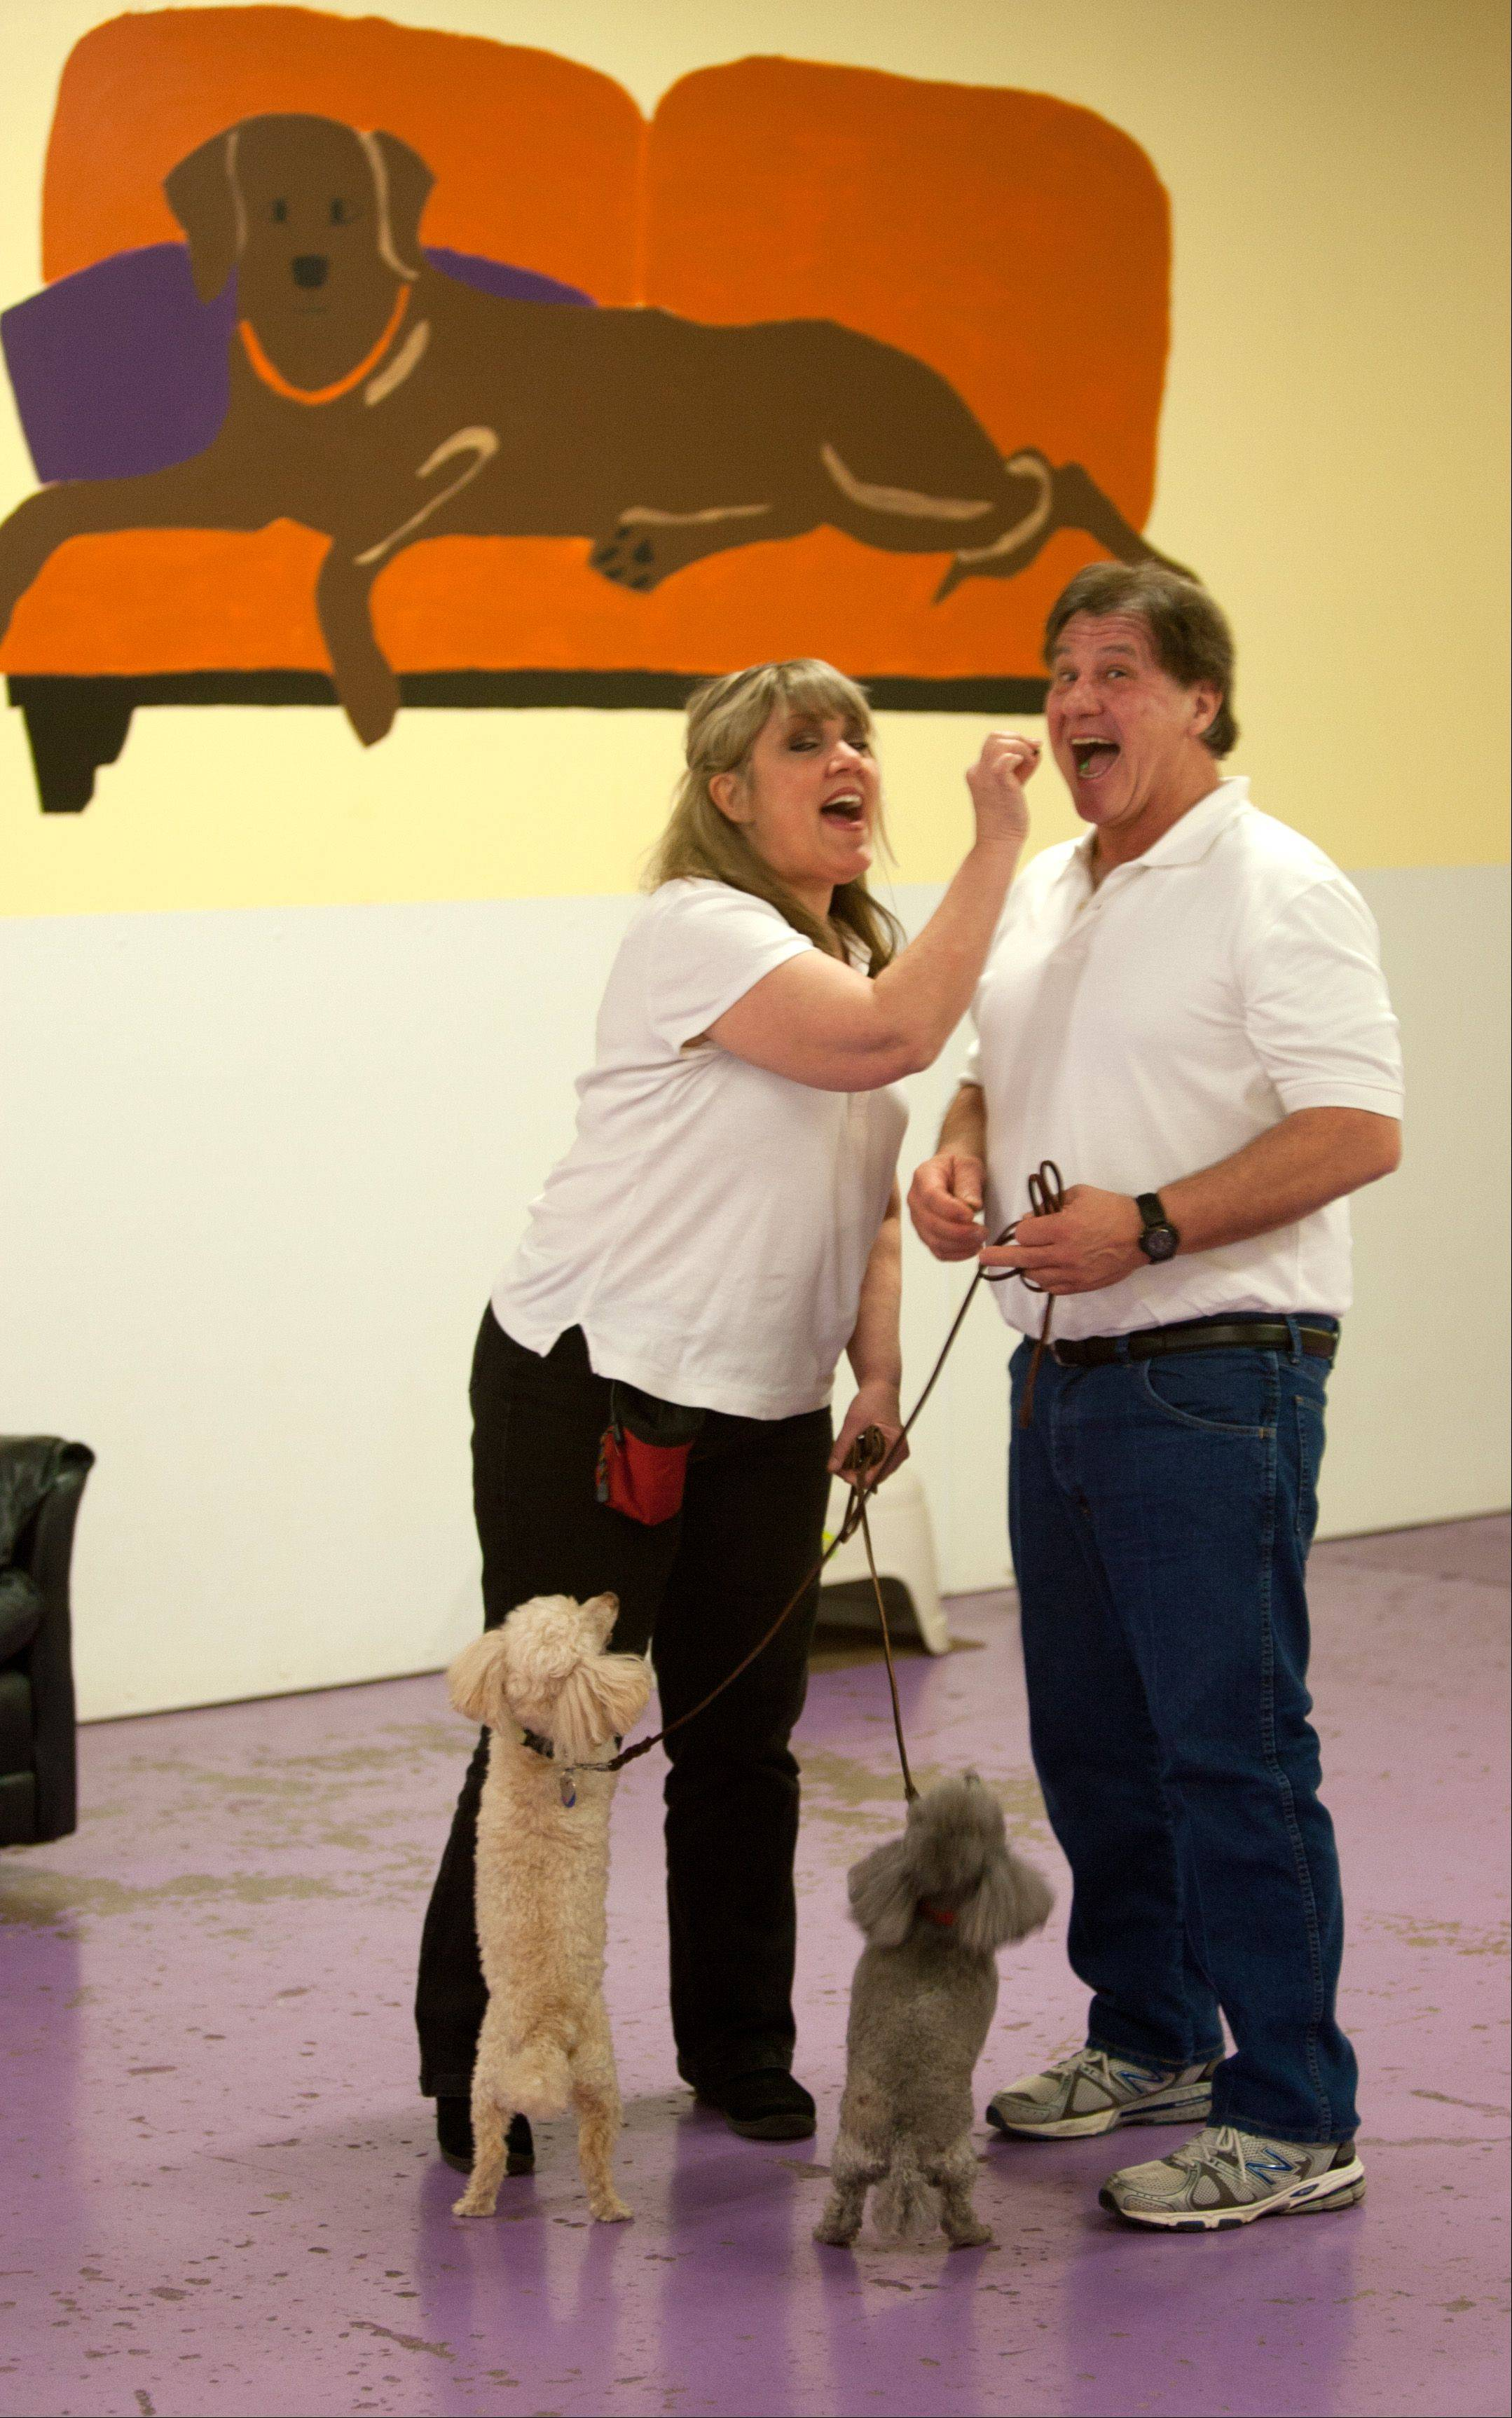 Philip and Etola Zinni, married for 32 years, share numerous activities, one of which includes spending time together at dog obedience classes with their poodles Autumn and Lexi.